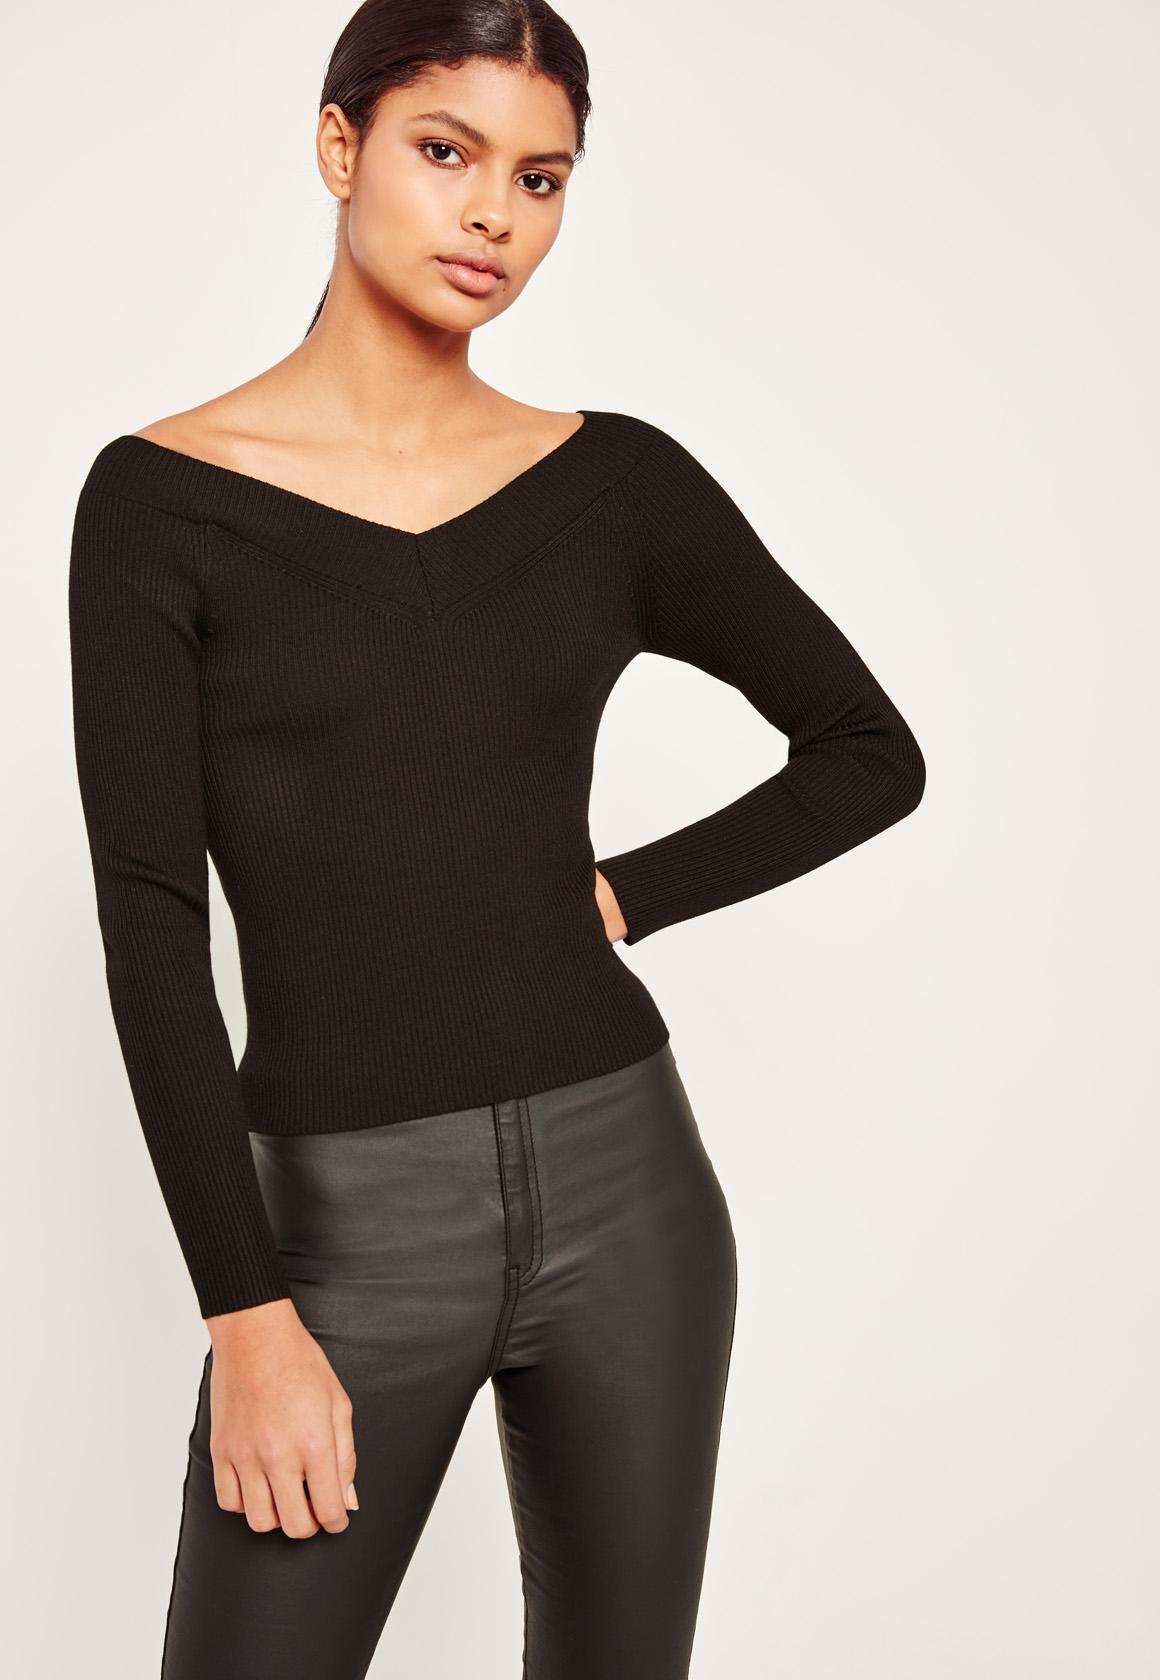 Sweater Missguided Ribbed Cropped Off Black Skinny Shoulder S178oqwen Pwp7q1w